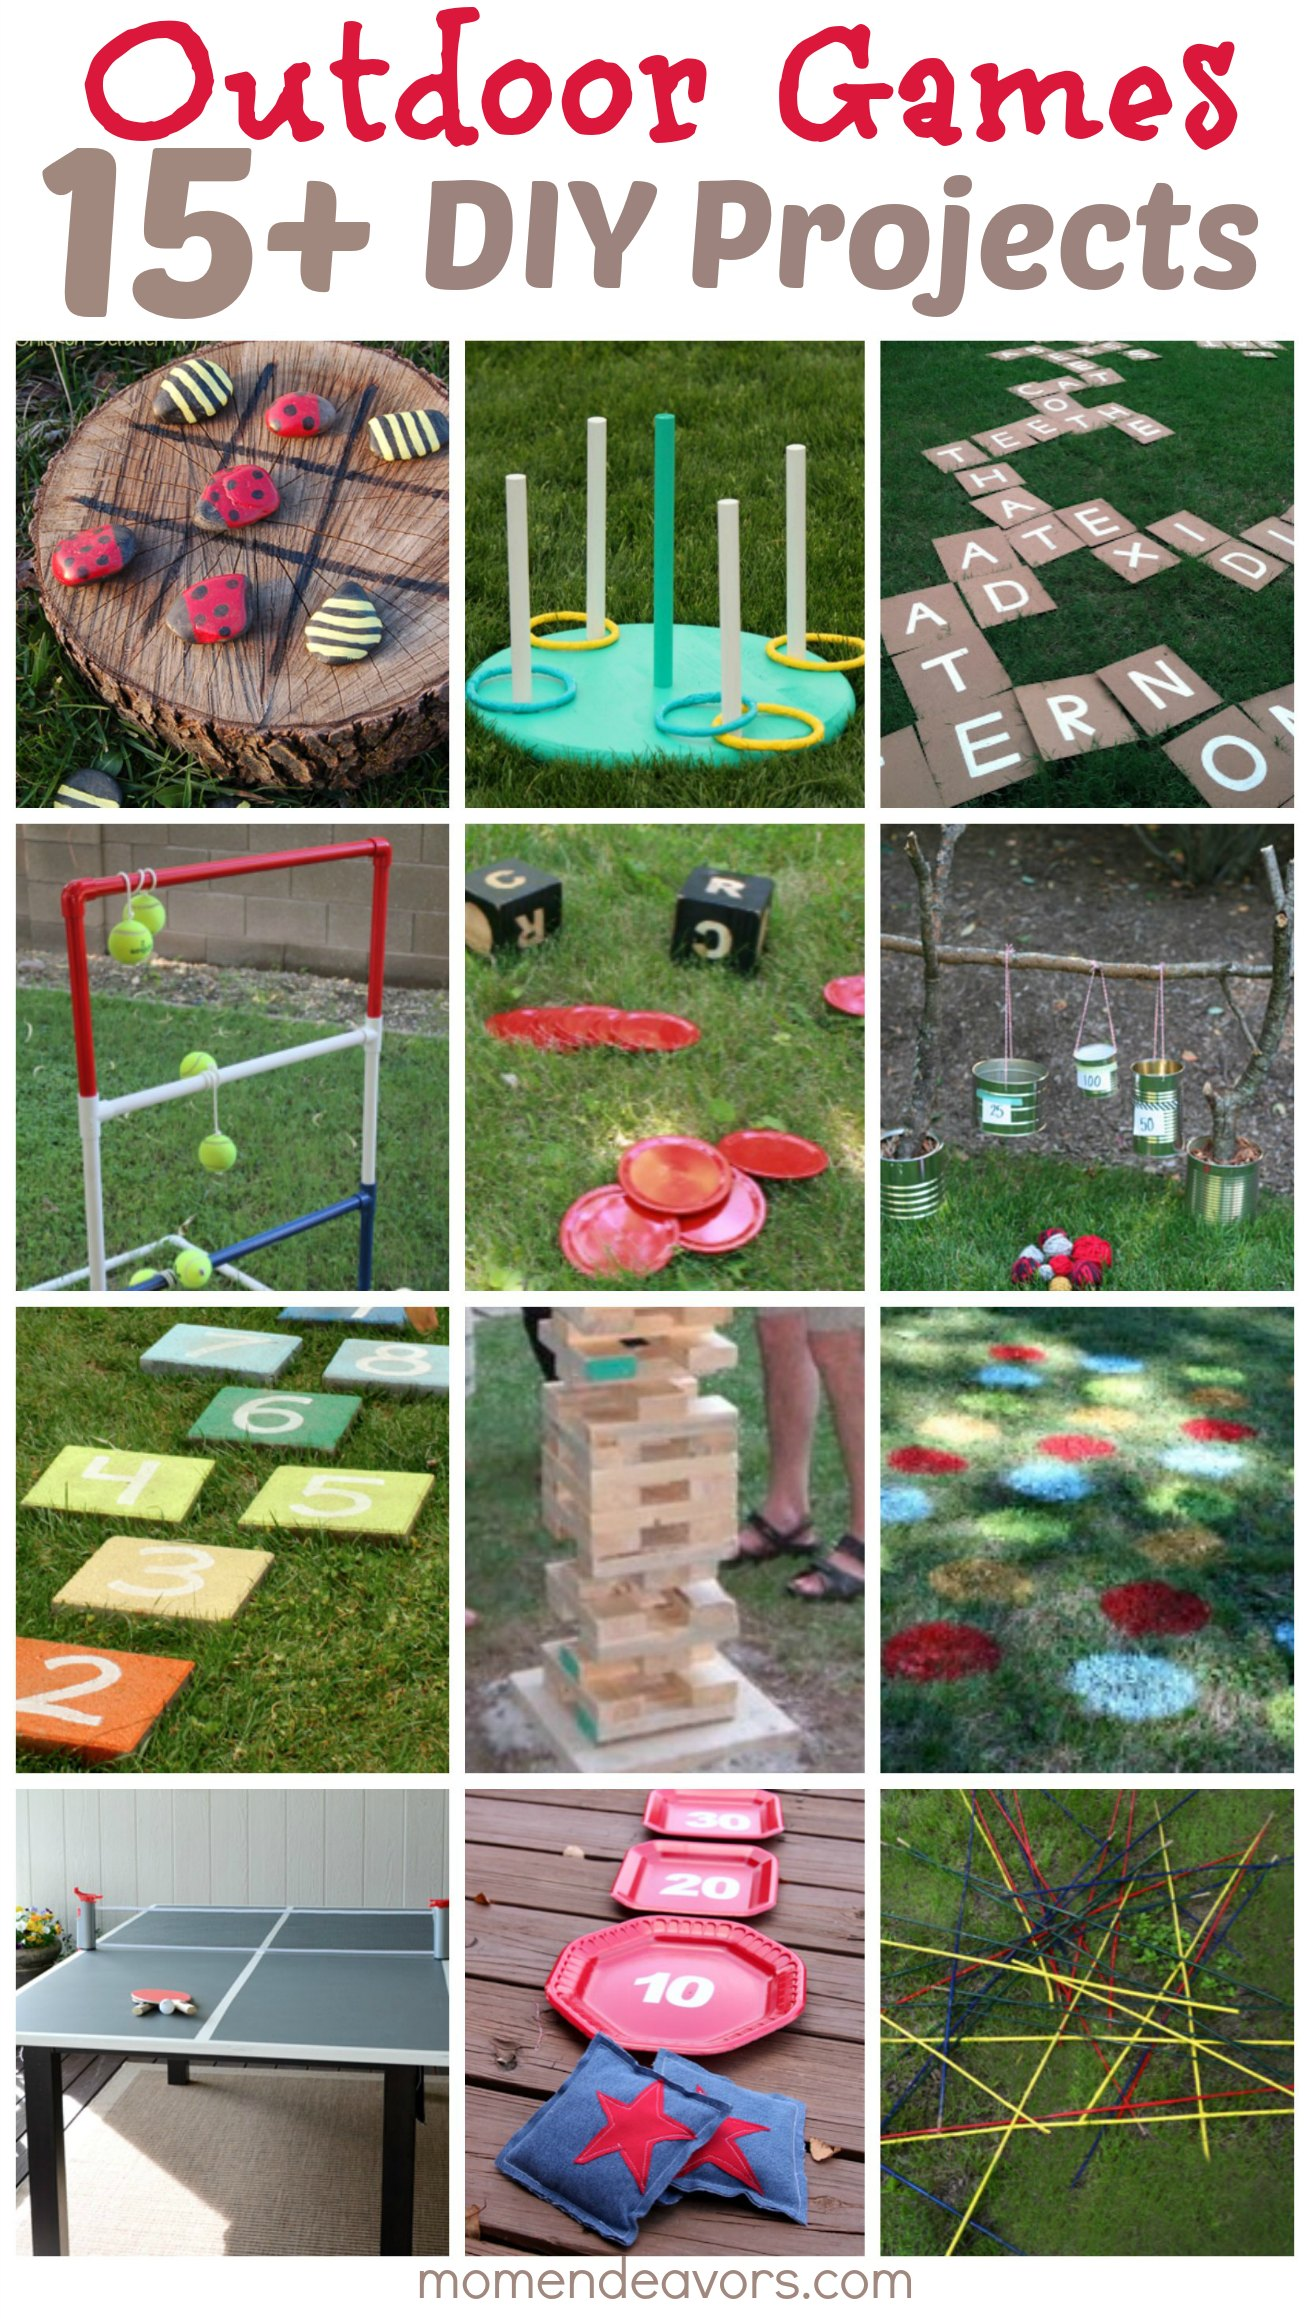 DIY Outdoor Games ? 15+ Awesome Project Ideas for Backyard Fun!